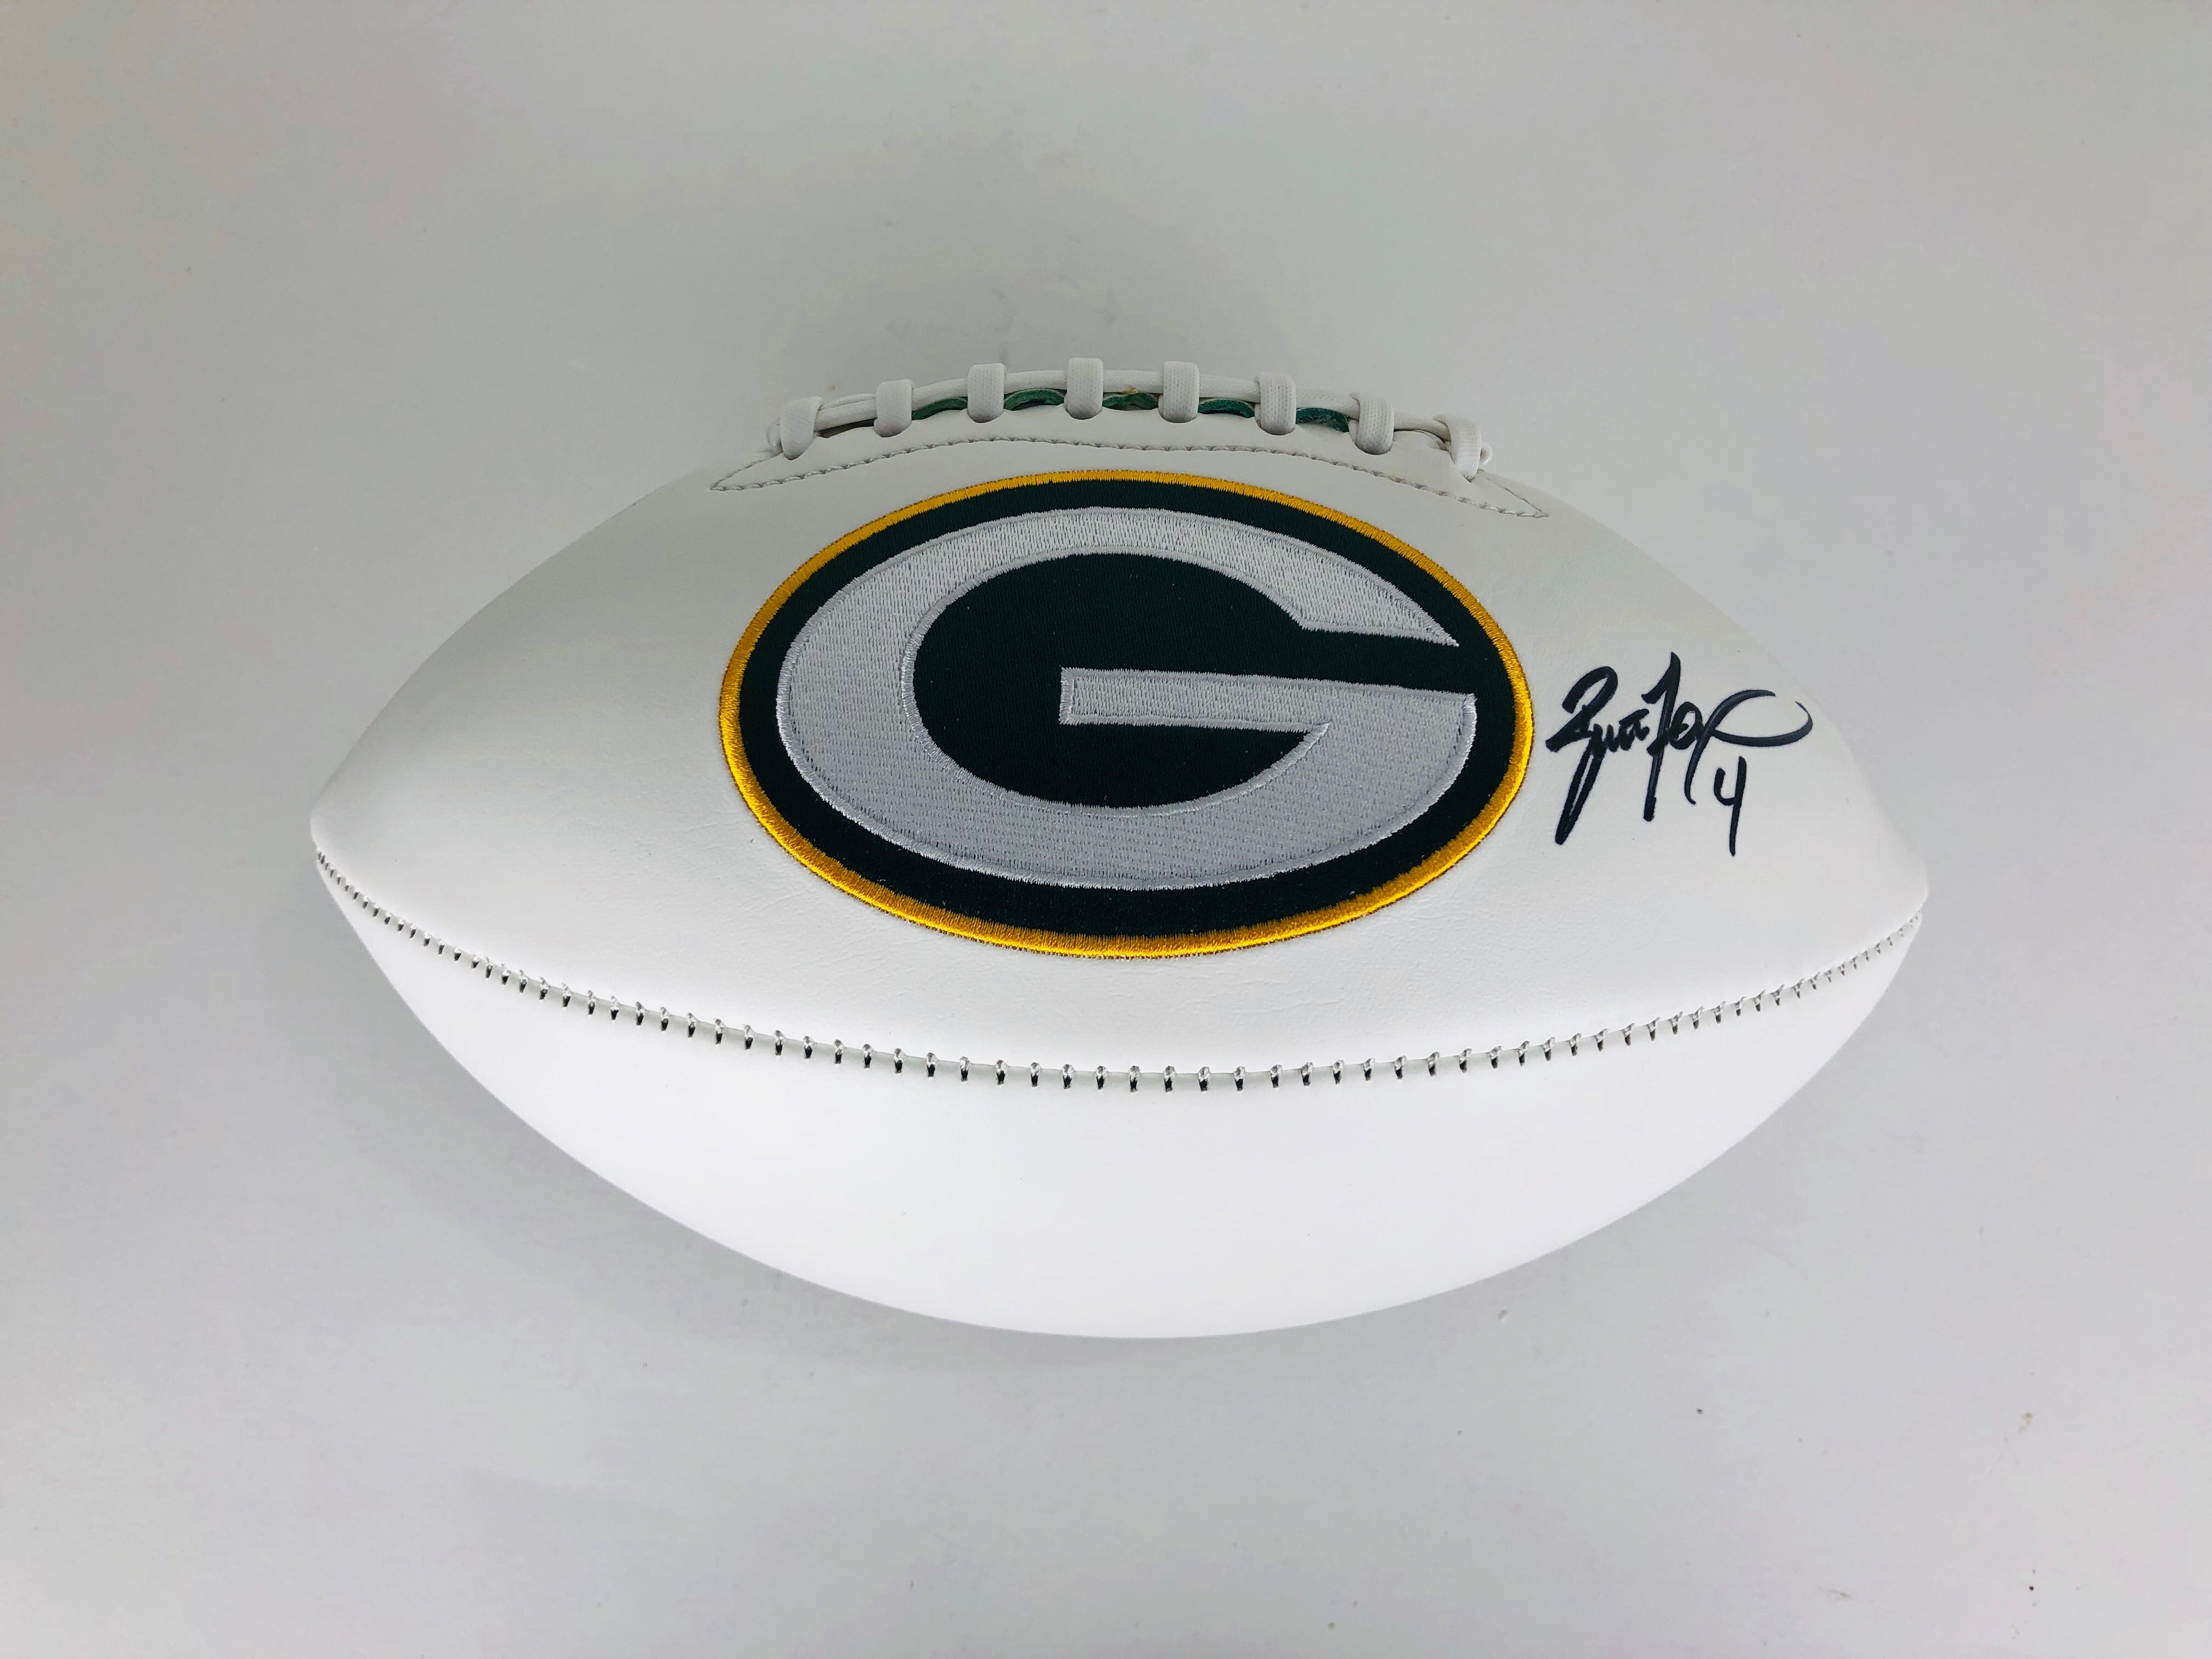 Brett Favre Autographed Football With COA